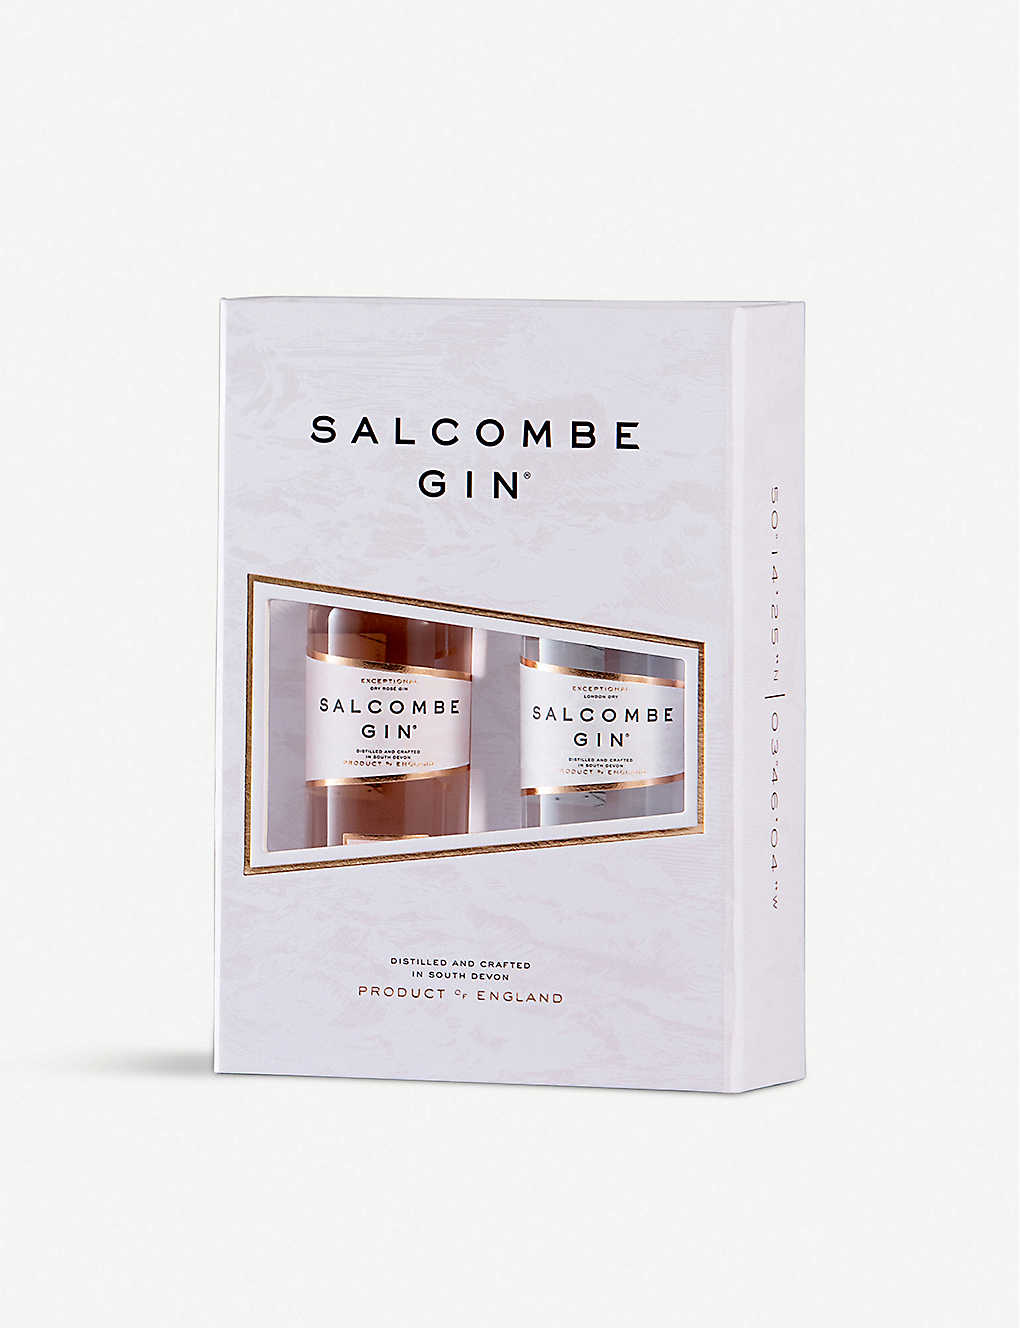 GIN: Salcombe Gin miniature gift set 2 x 50ml